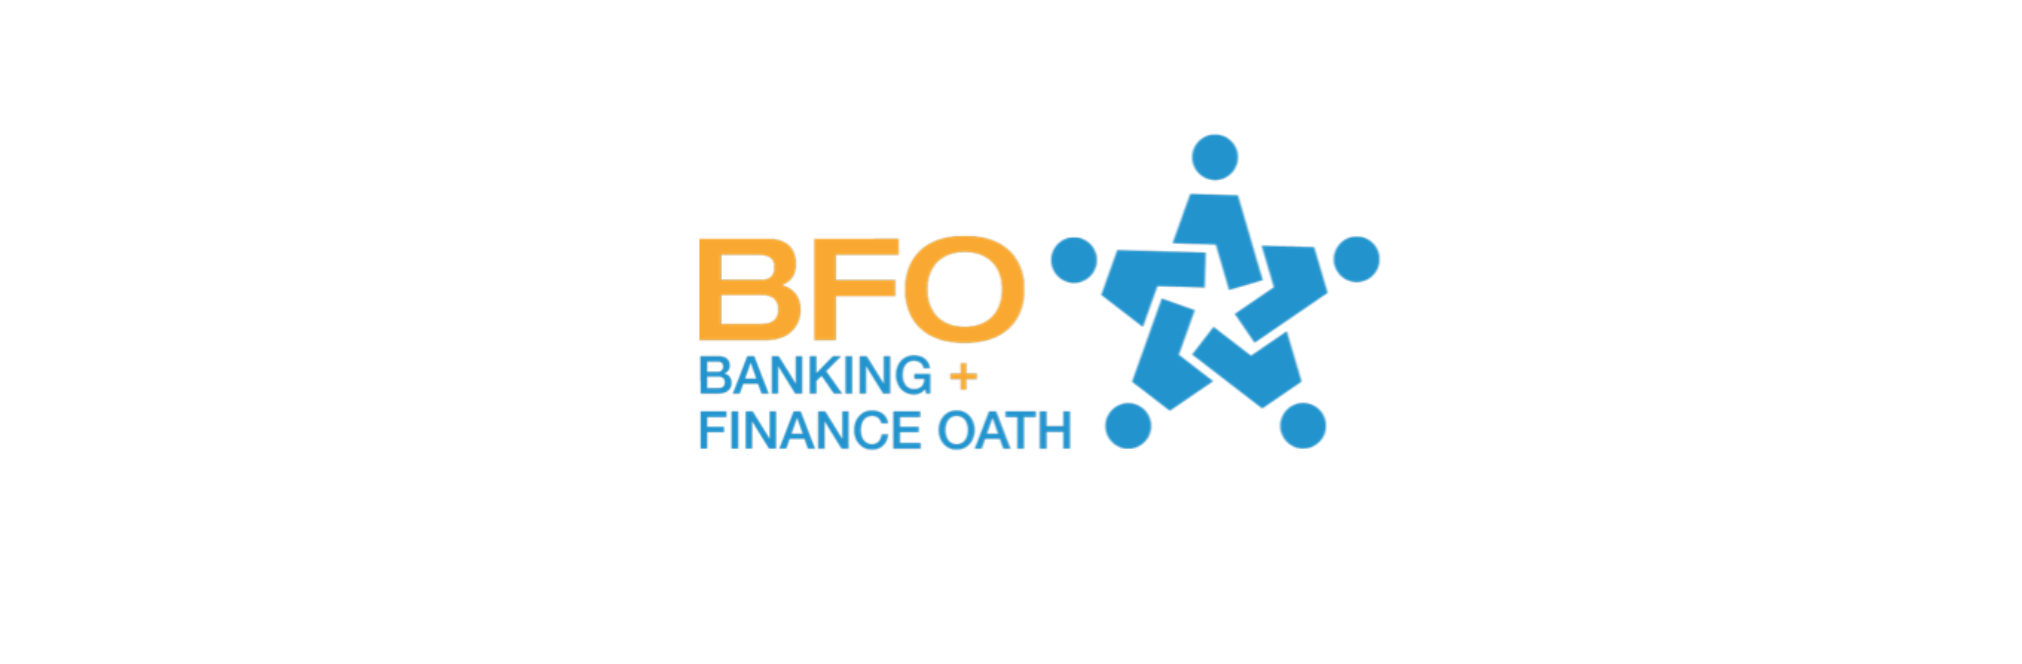 """- """"Shadé Zahrai was our Guest Speaker at The Banking and Finance Oath (The BFO) 2019 Young Ambassadors event… Quite simply, Shadé captivated the room with her insights on what it means to work with purpose and put personal values in to action. She spent considerable time researching the objectives of the event, understanding the purpose of The BFO and who the audience would be, and tailored her message accordingly. Shadé brought the perfect combination of passion, energy, storytelling and knowledge to our event. The feedback we got from our 2019 cohort of Young Ambassadors and other senior leaders in the room was that Shadé brought to life with great clarity and poise, how they can consistently align their purpose and values to do good in society and be fulfilled in their careers.""""– Jodi O'Callaghan, Executive Officer, Banking and Finance Oath"""